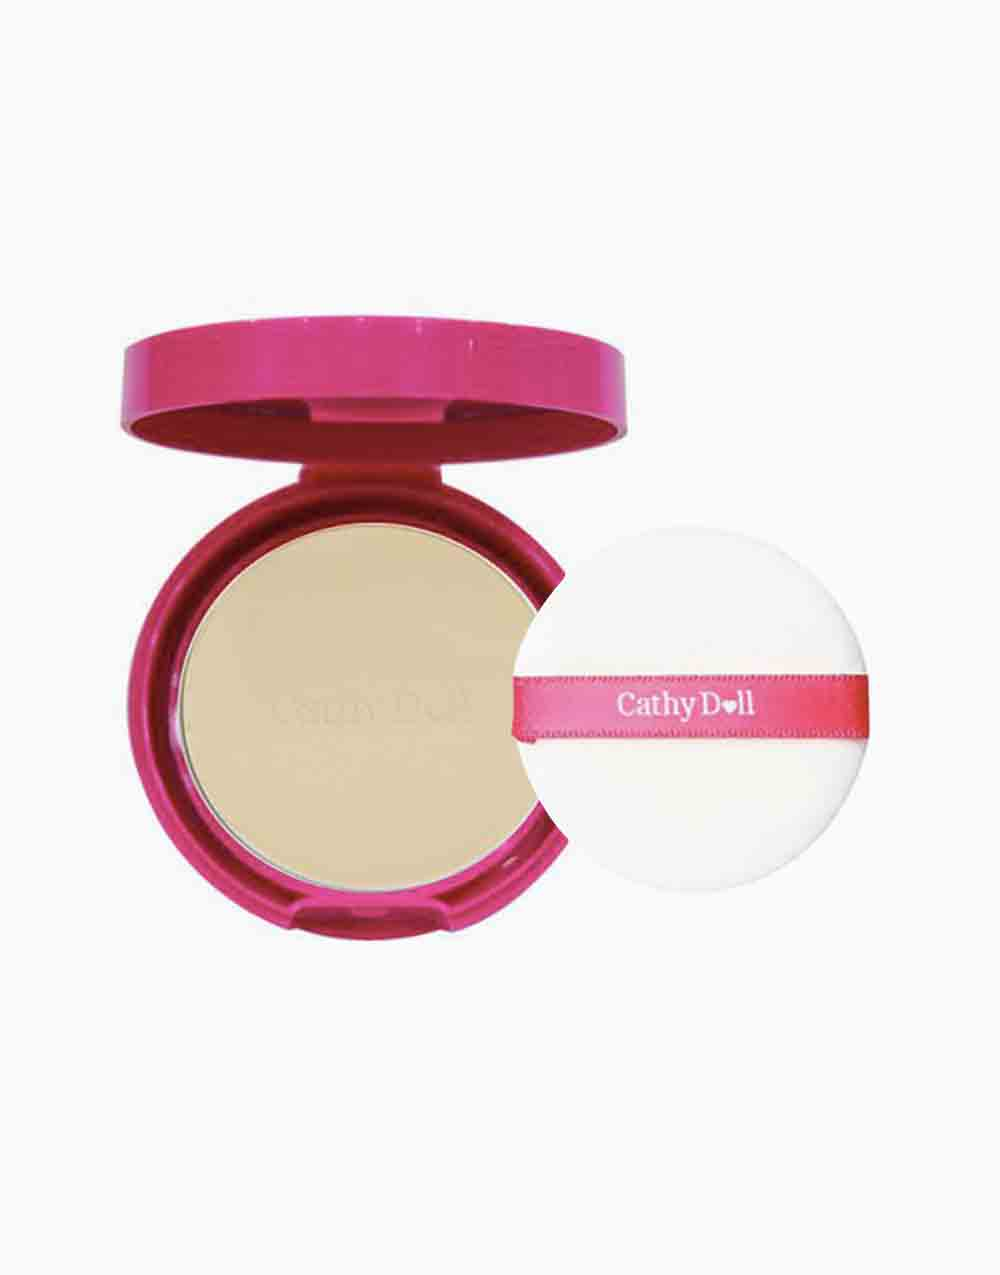 Speed White CC Powder Pact SPF 40 PA+++ Mini (4.5g) by Cathy Doll | #23 Natural Beige